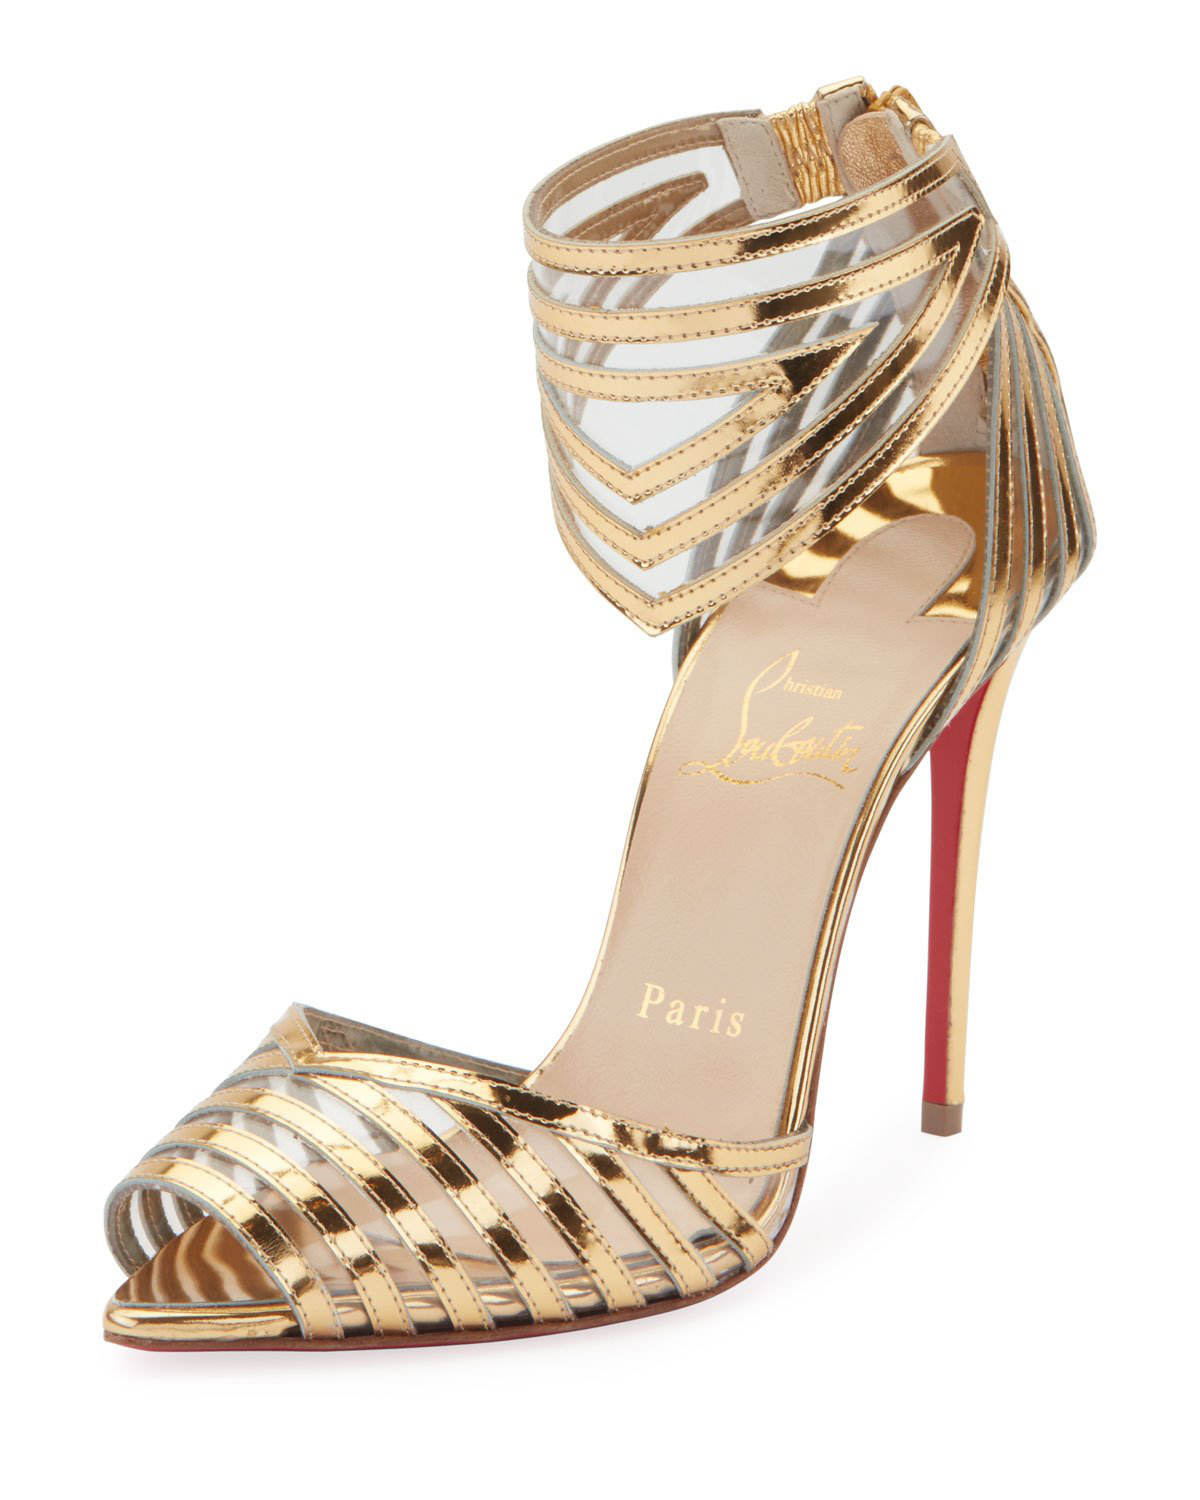 best service fc990 bd8d6 Christian Louboutin Maratena 100 Metallic/PVC Red Sole Sandals